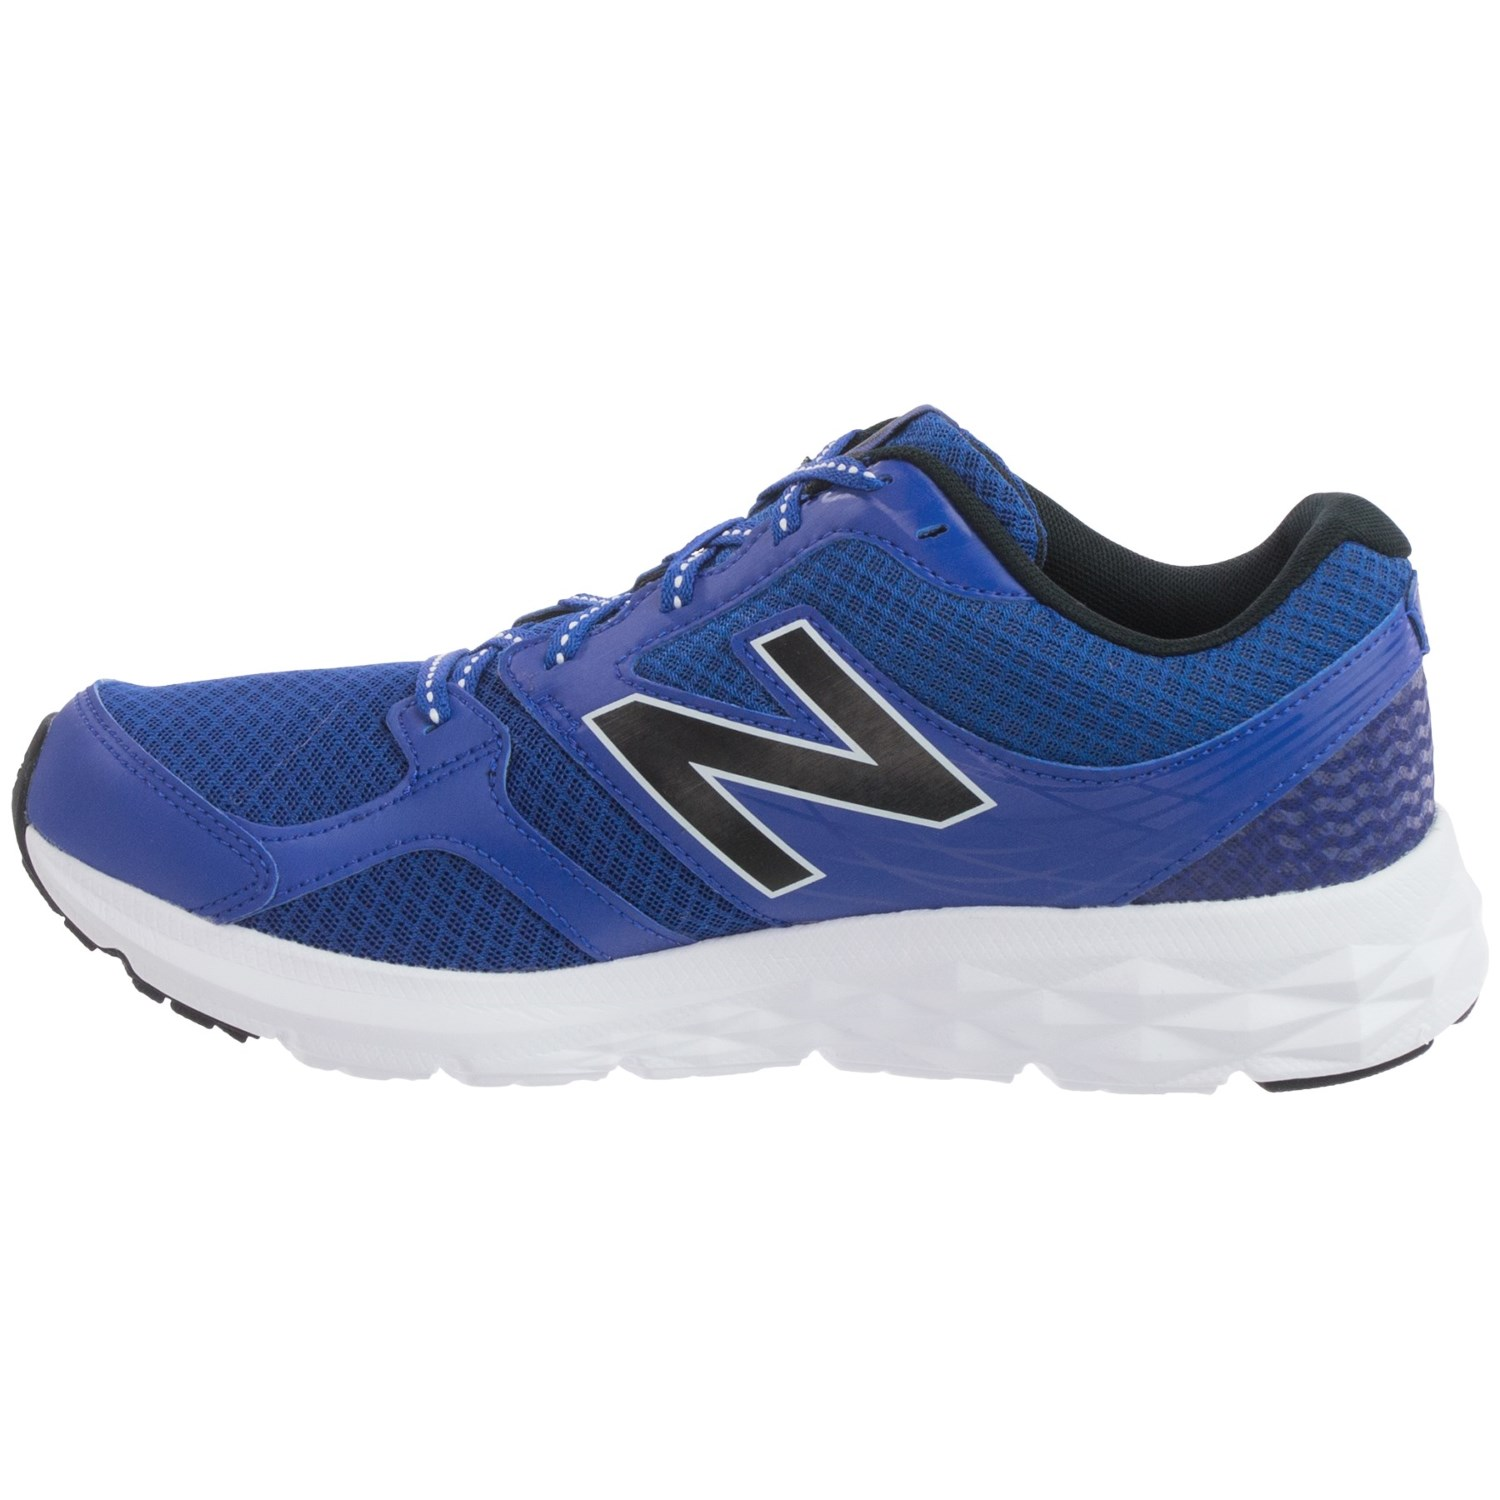 new balance 490v3 running shoes for men save 63. Black Bedroom Furniture Sets. Home Design Ideas